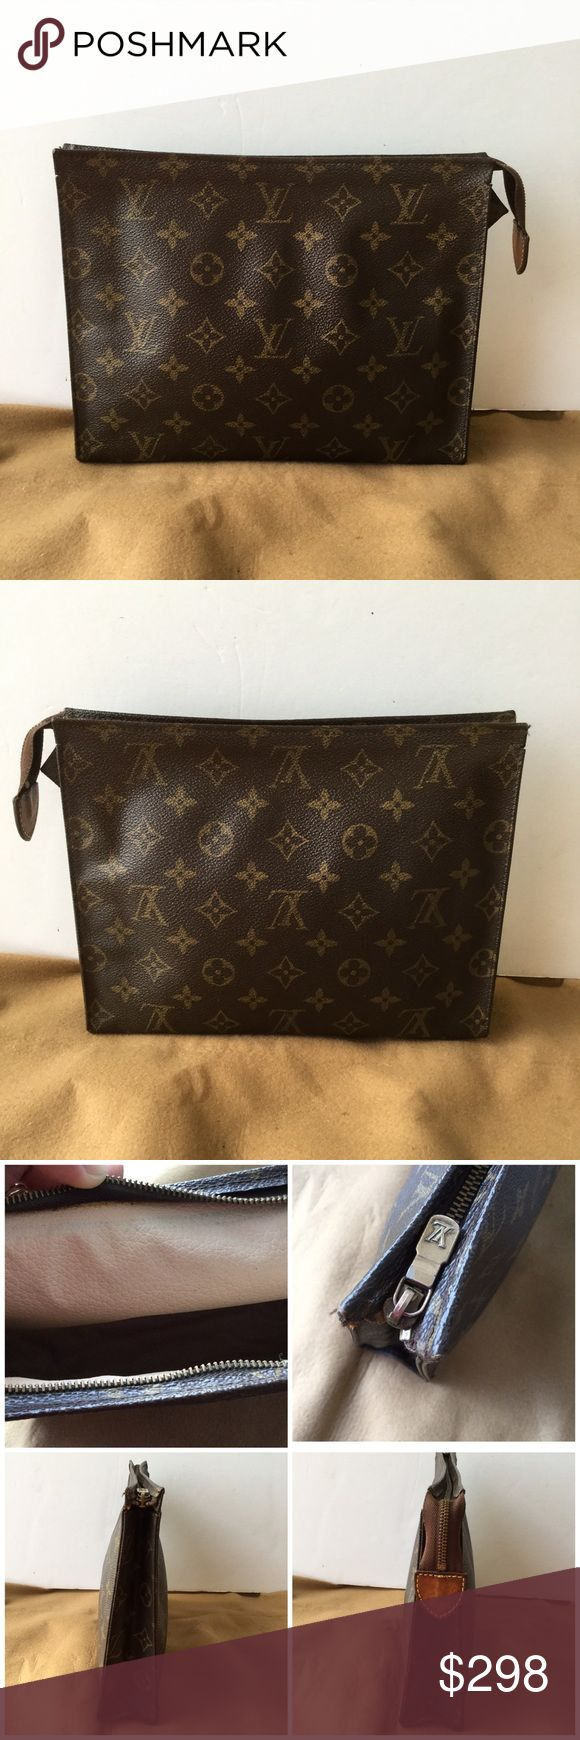 Louis Vuitton Toilet 26 Cosmetic Pouch 100 Authentic Made